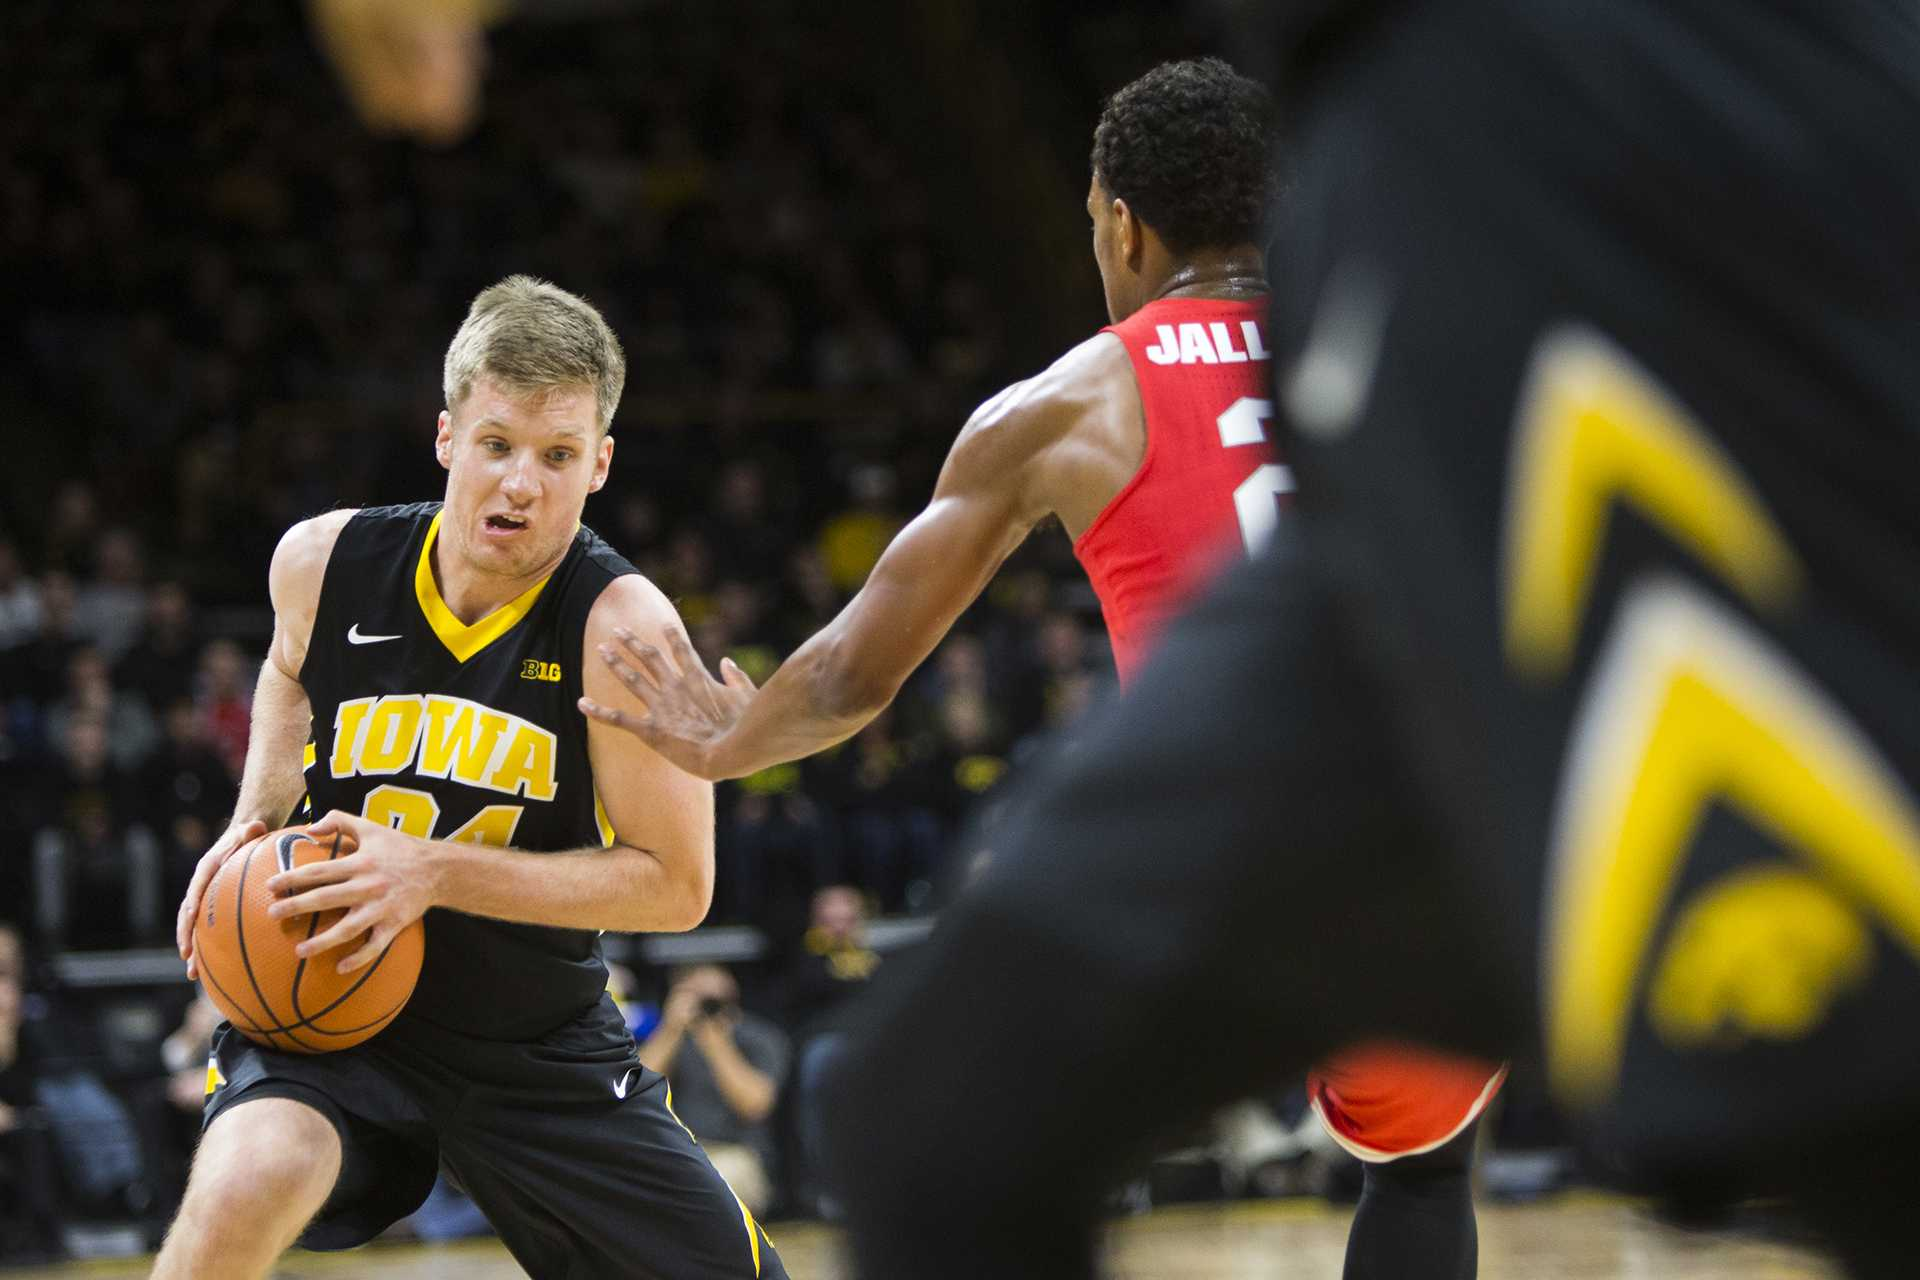 Iowa guard Brady Ellingson looks to the lane during an Iowa/Ohio State men's basketball game in Carver-Hawkeye Arena on Thursday, Jan. 4, 2018. The Buckeyes defeated the Hawkeyes, 92-81. (Joseph Cress/The Daily Iowan)